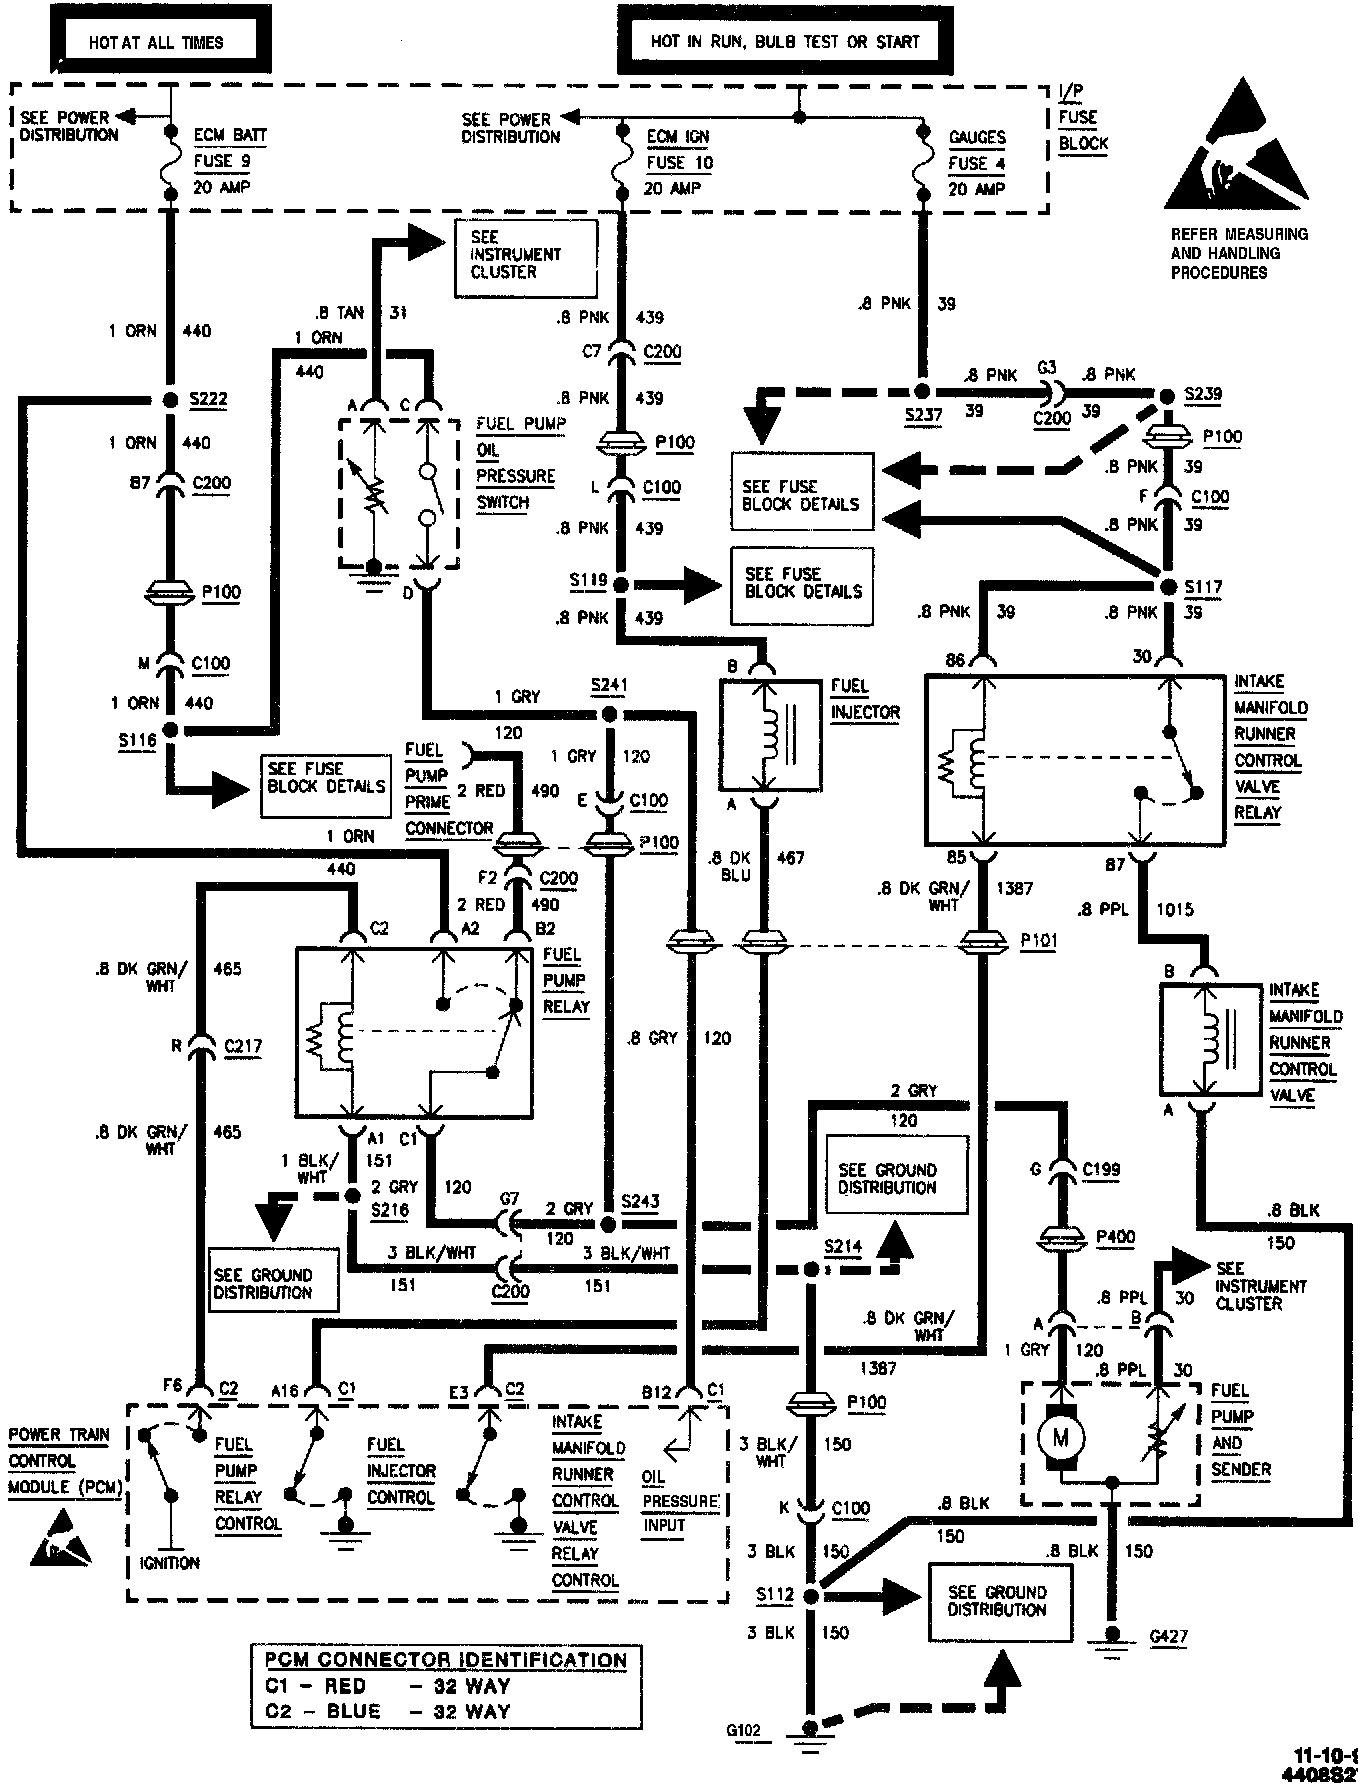 s10 wiring harness wiring diagram Dodge Ram Wiring Diagram 1997 chevy s10 wiring diagram wiring diagram96 s10 wiring harness diagram wiring diagram data 1999 s10